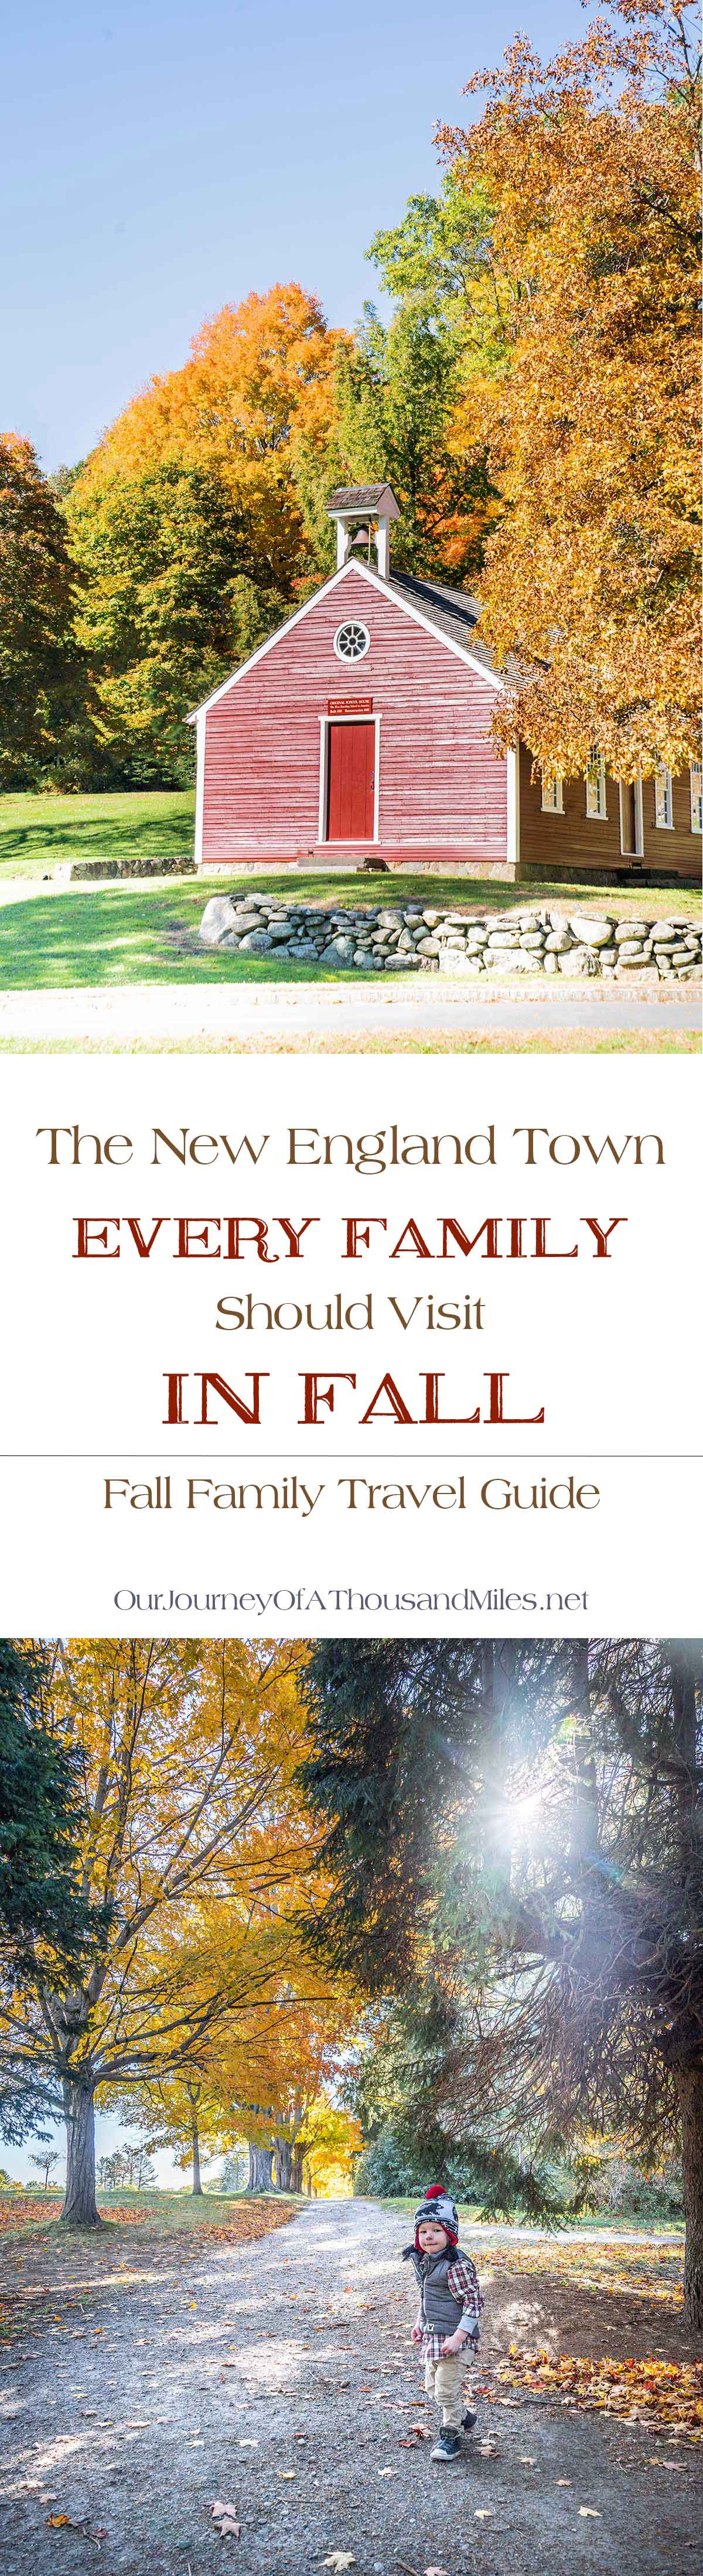 The-New-England-Town-Every-Family-Should-Visit-in-Fall